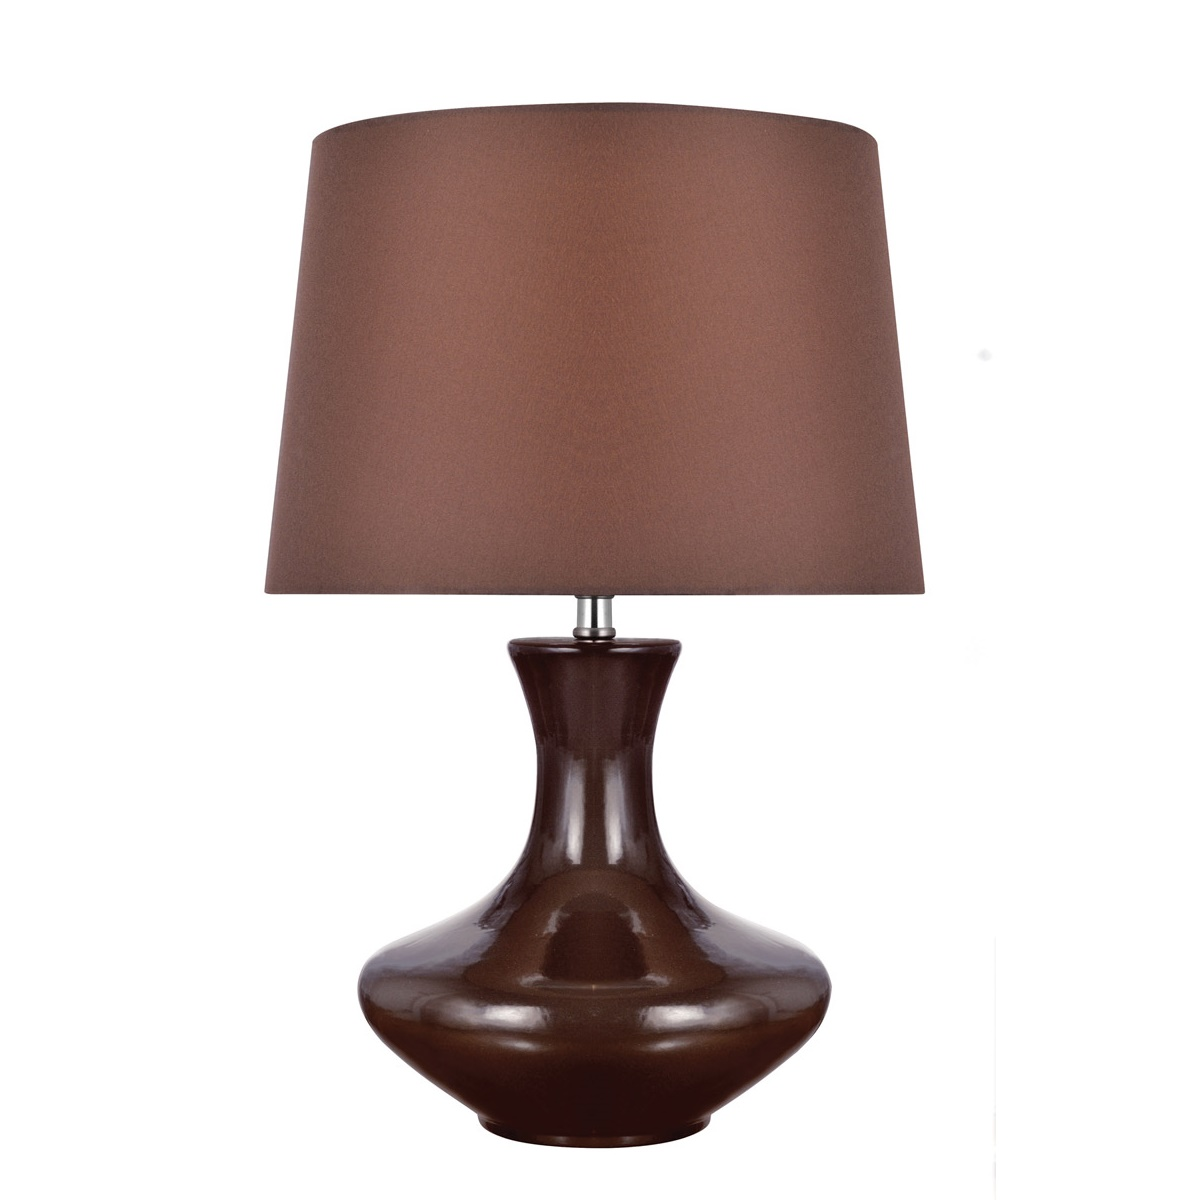 Lite Source Nessia 1 Light Table Lamp In Coffee Ceramic With Coffee Fabric L Brilliant Source